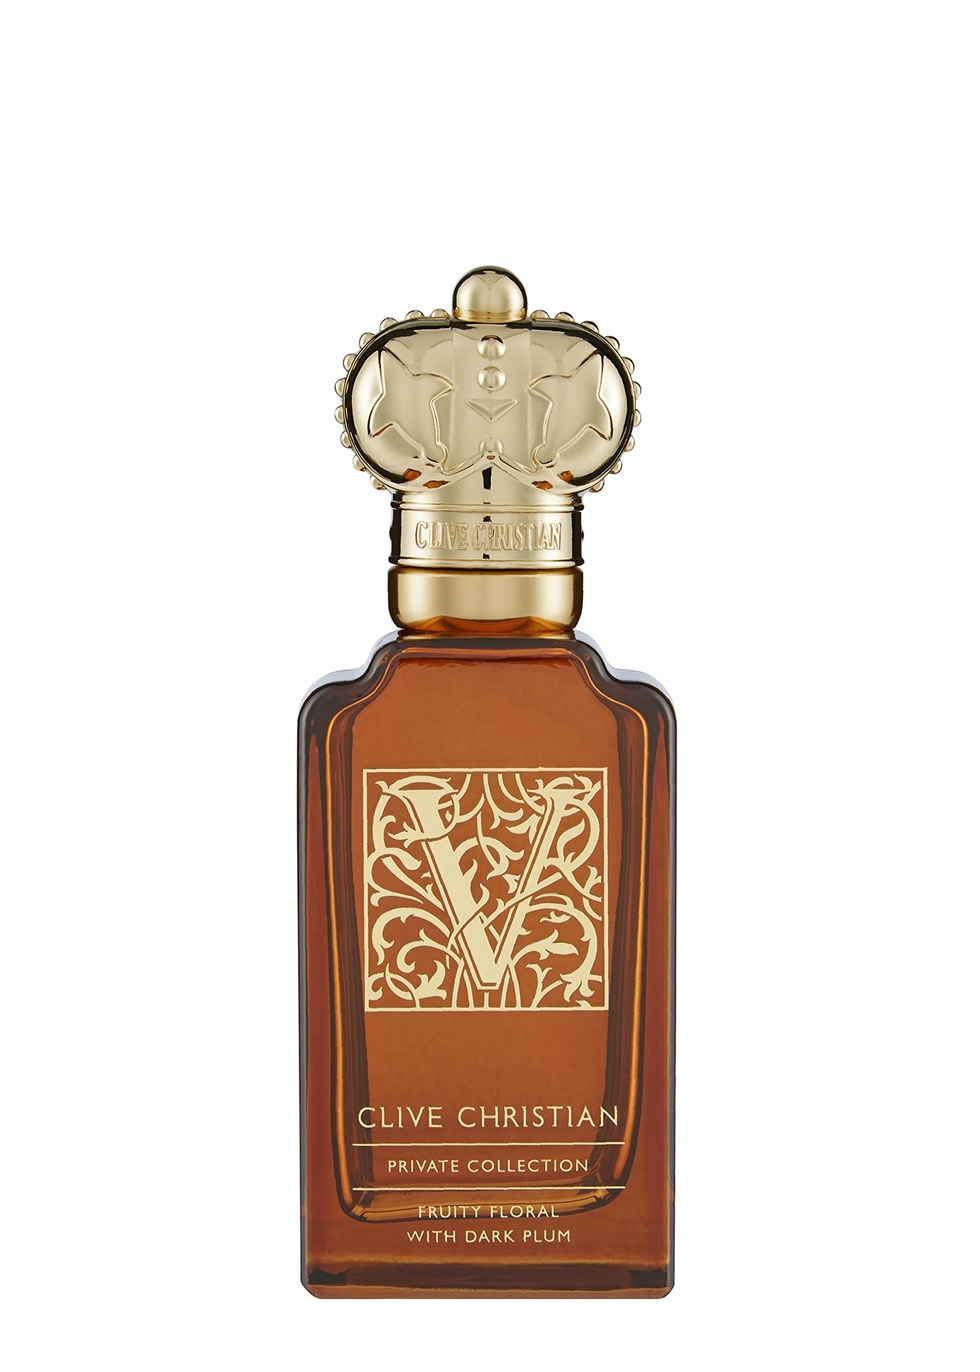 Духи Clive Christian V Fruity Floral 50ml тестер фото